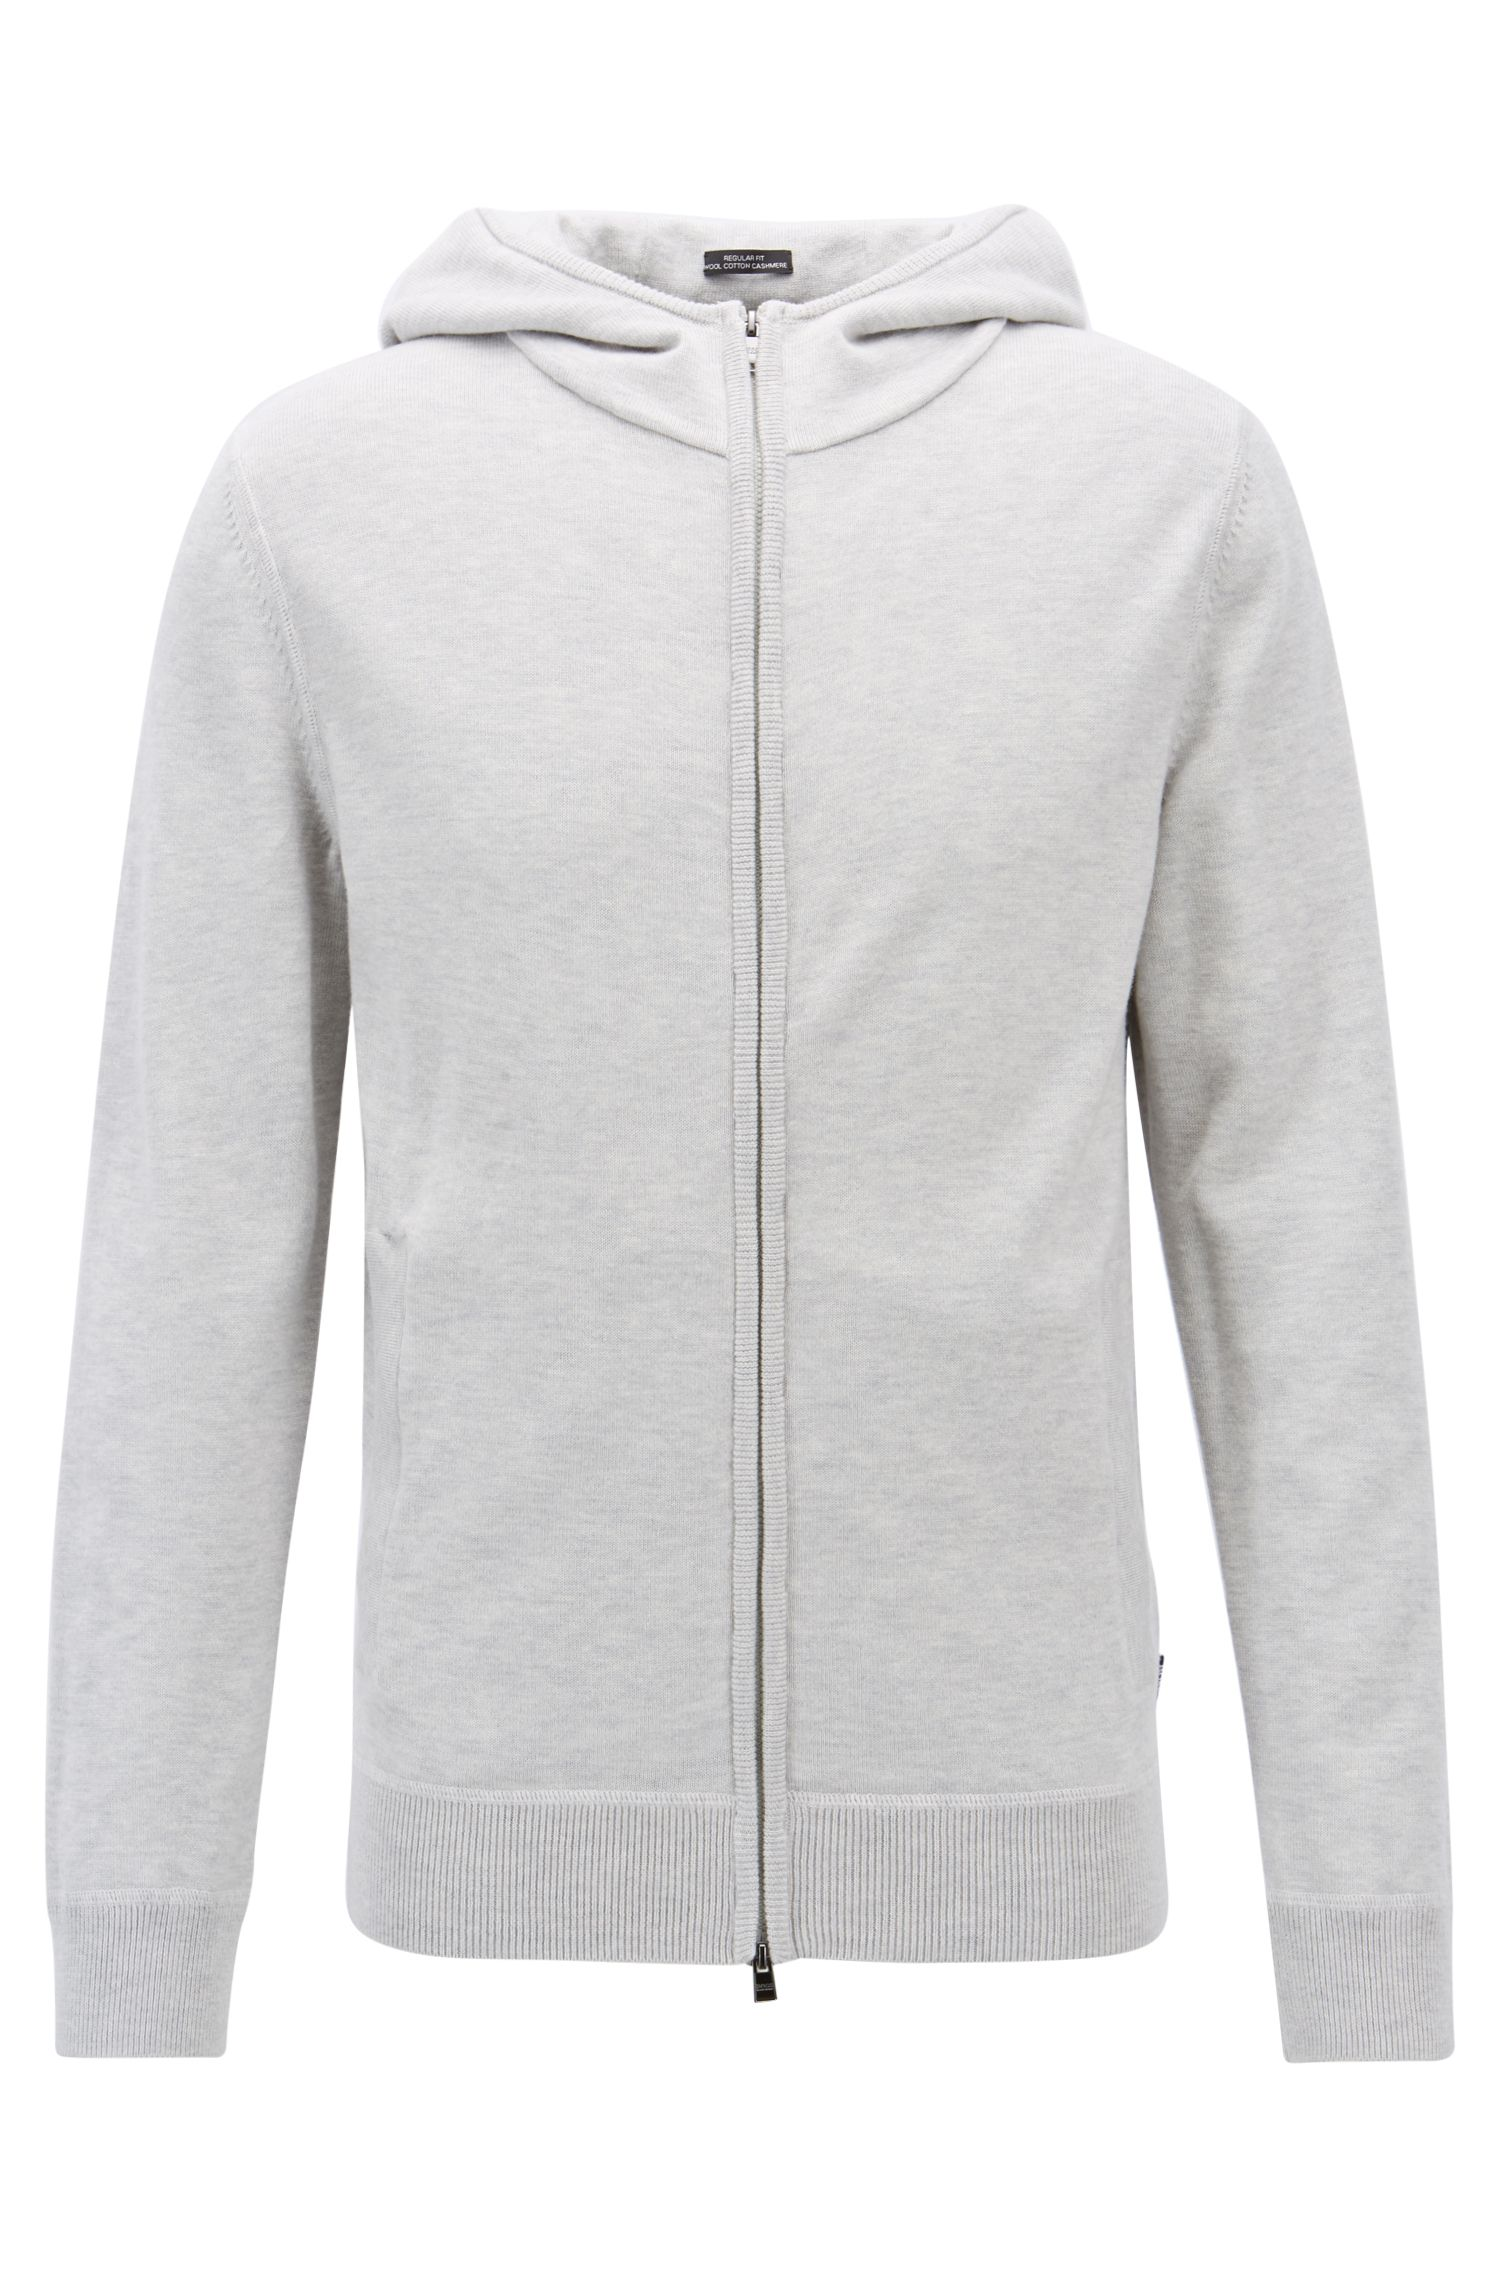 Zippered hoodie in wool, cotton, and cashmere, Open Grey